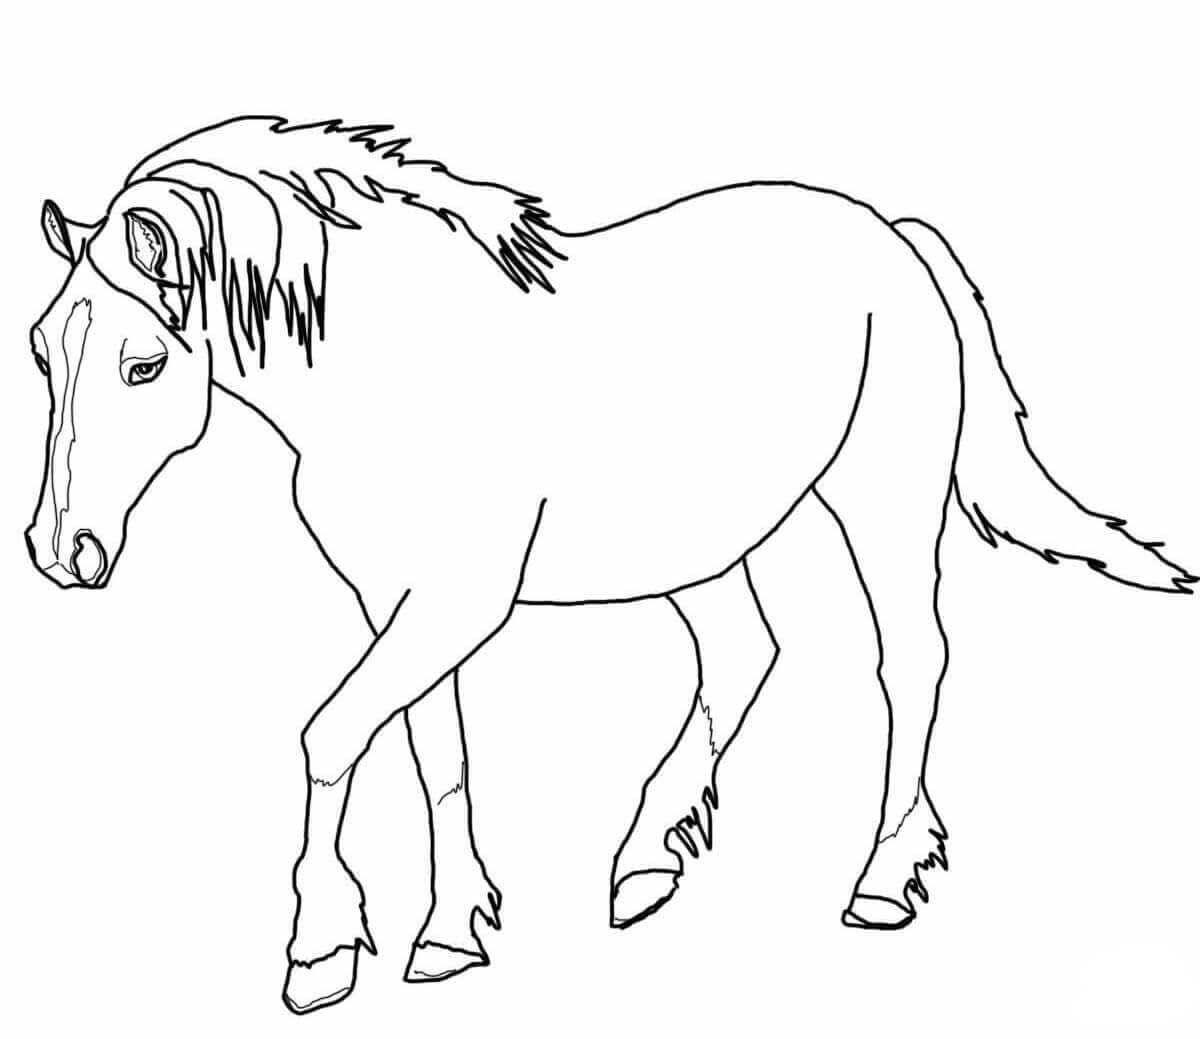 Tennessee Walking Horse Coloring Page Horse Coloring Horse Coloring Pages Horse Coloring Books